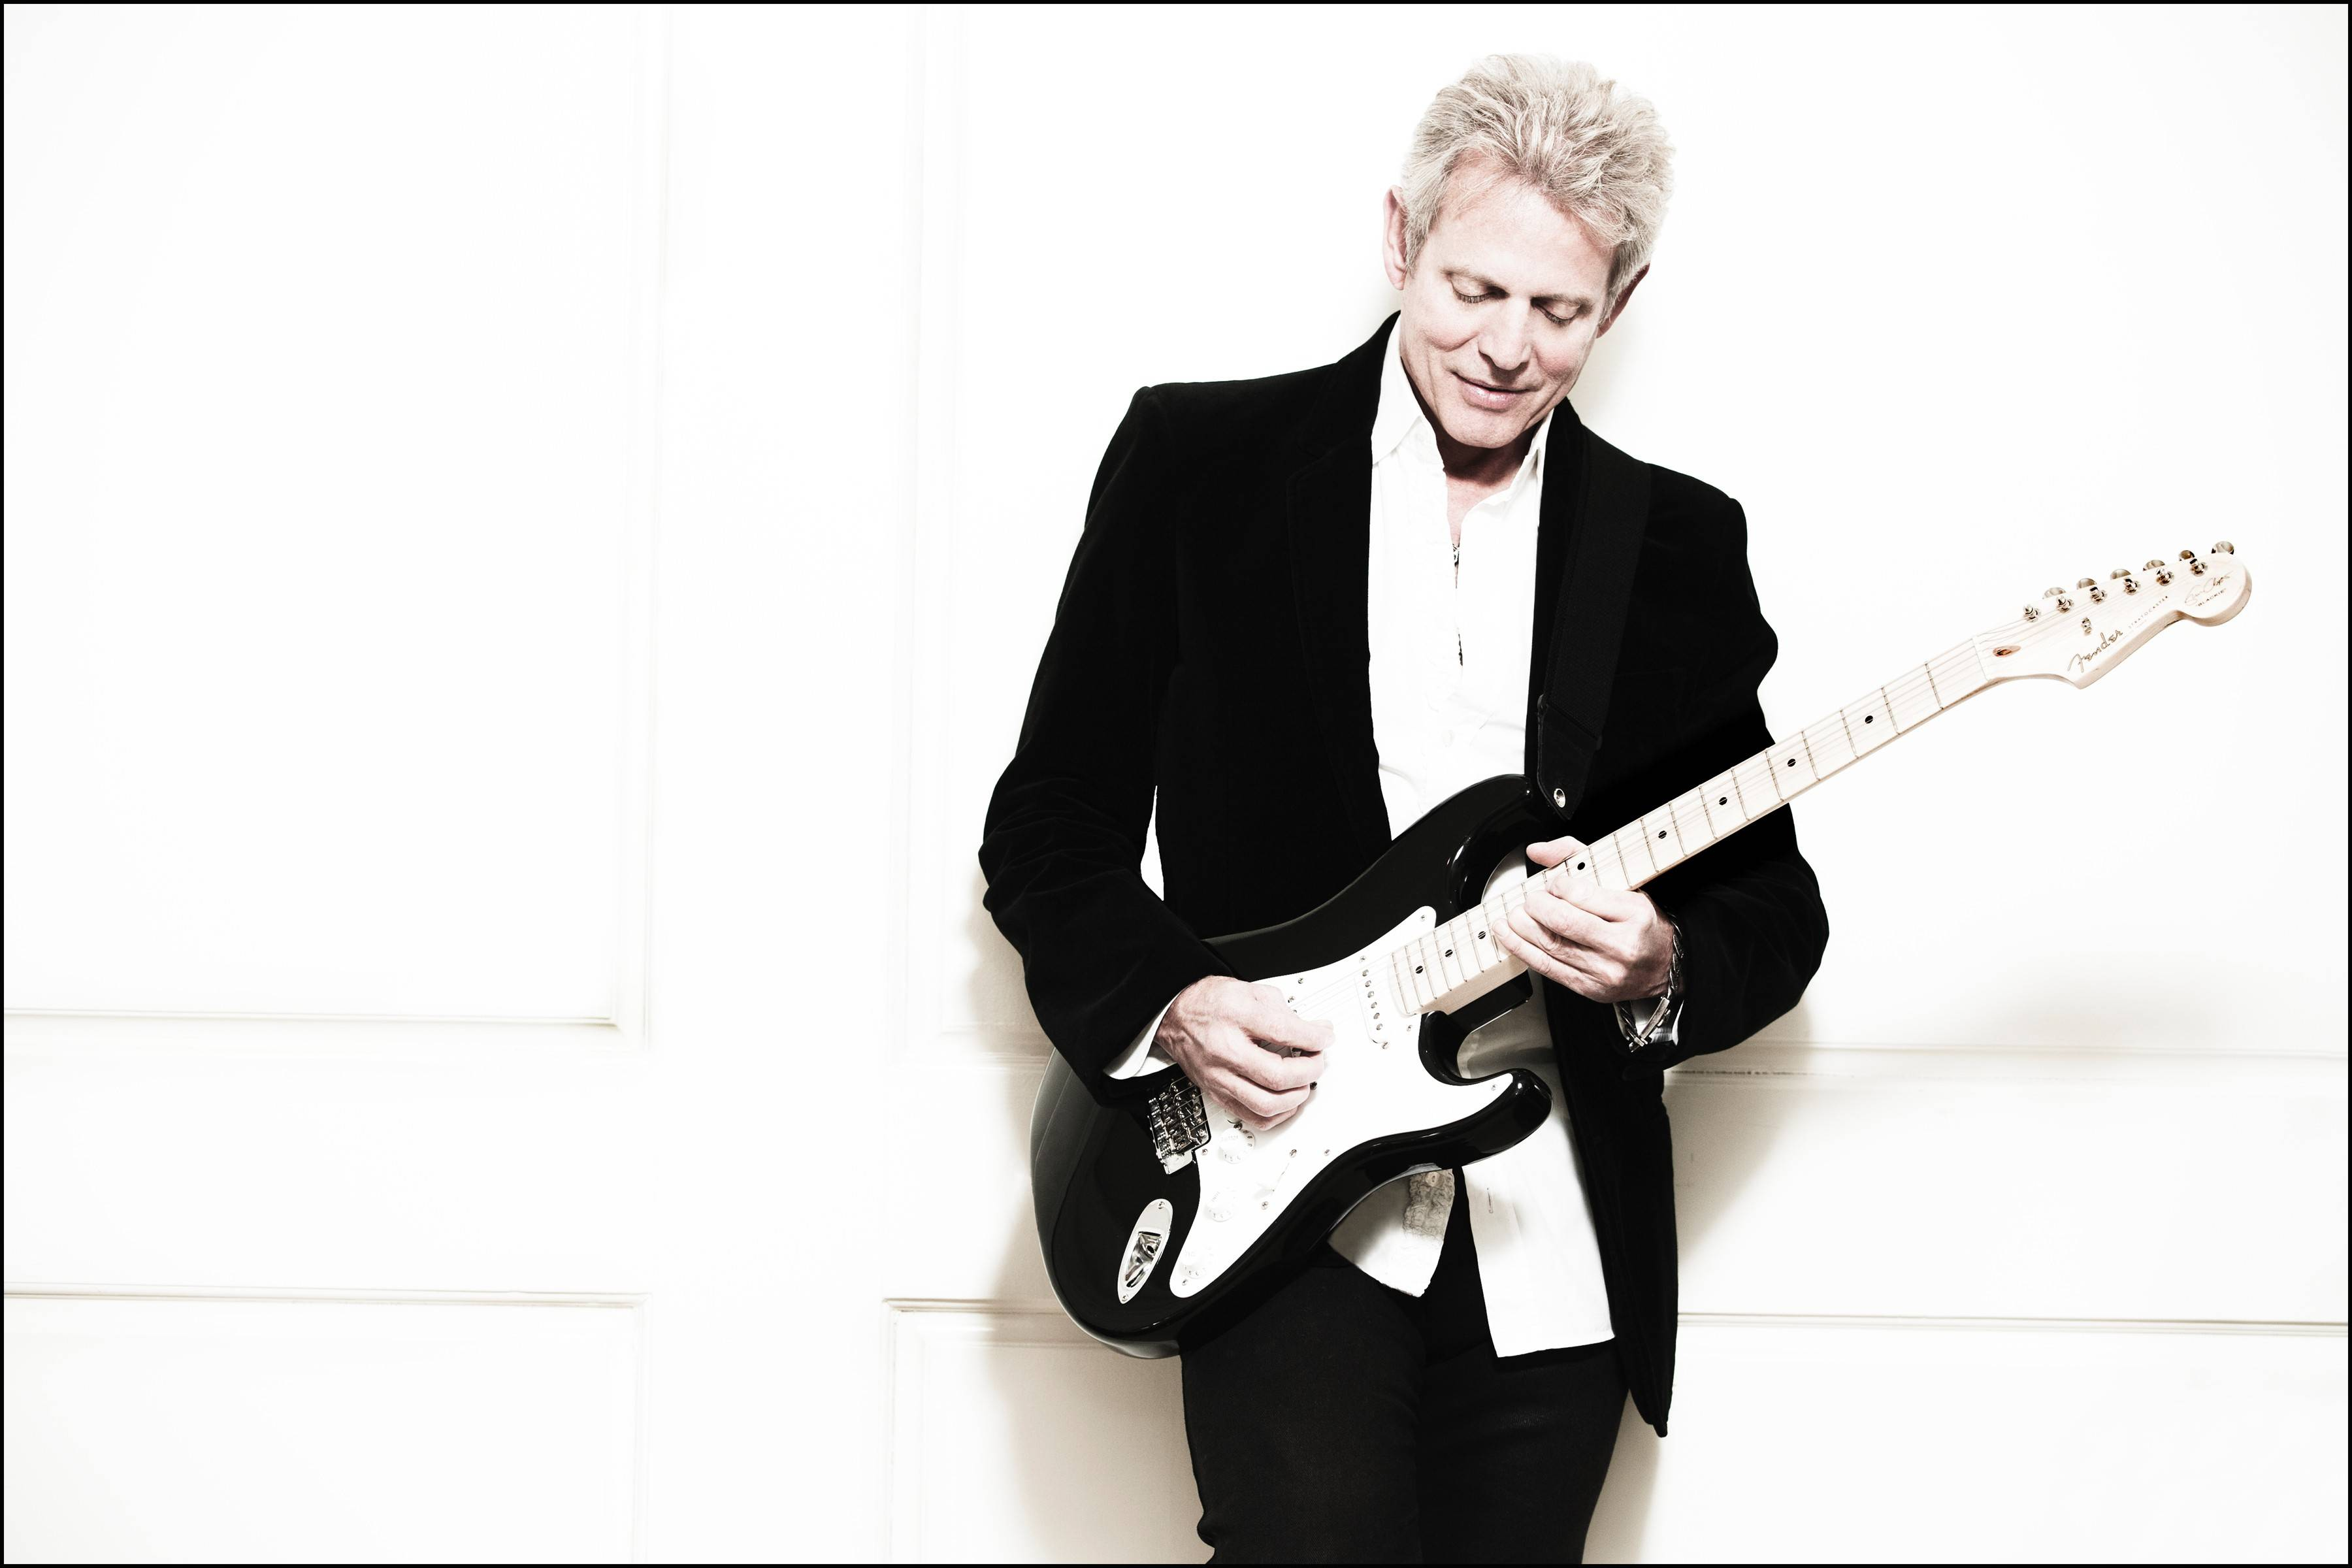 Don Felder, formerly of The Eagles, recently performed at the Arcada Theatre in St. Charles.